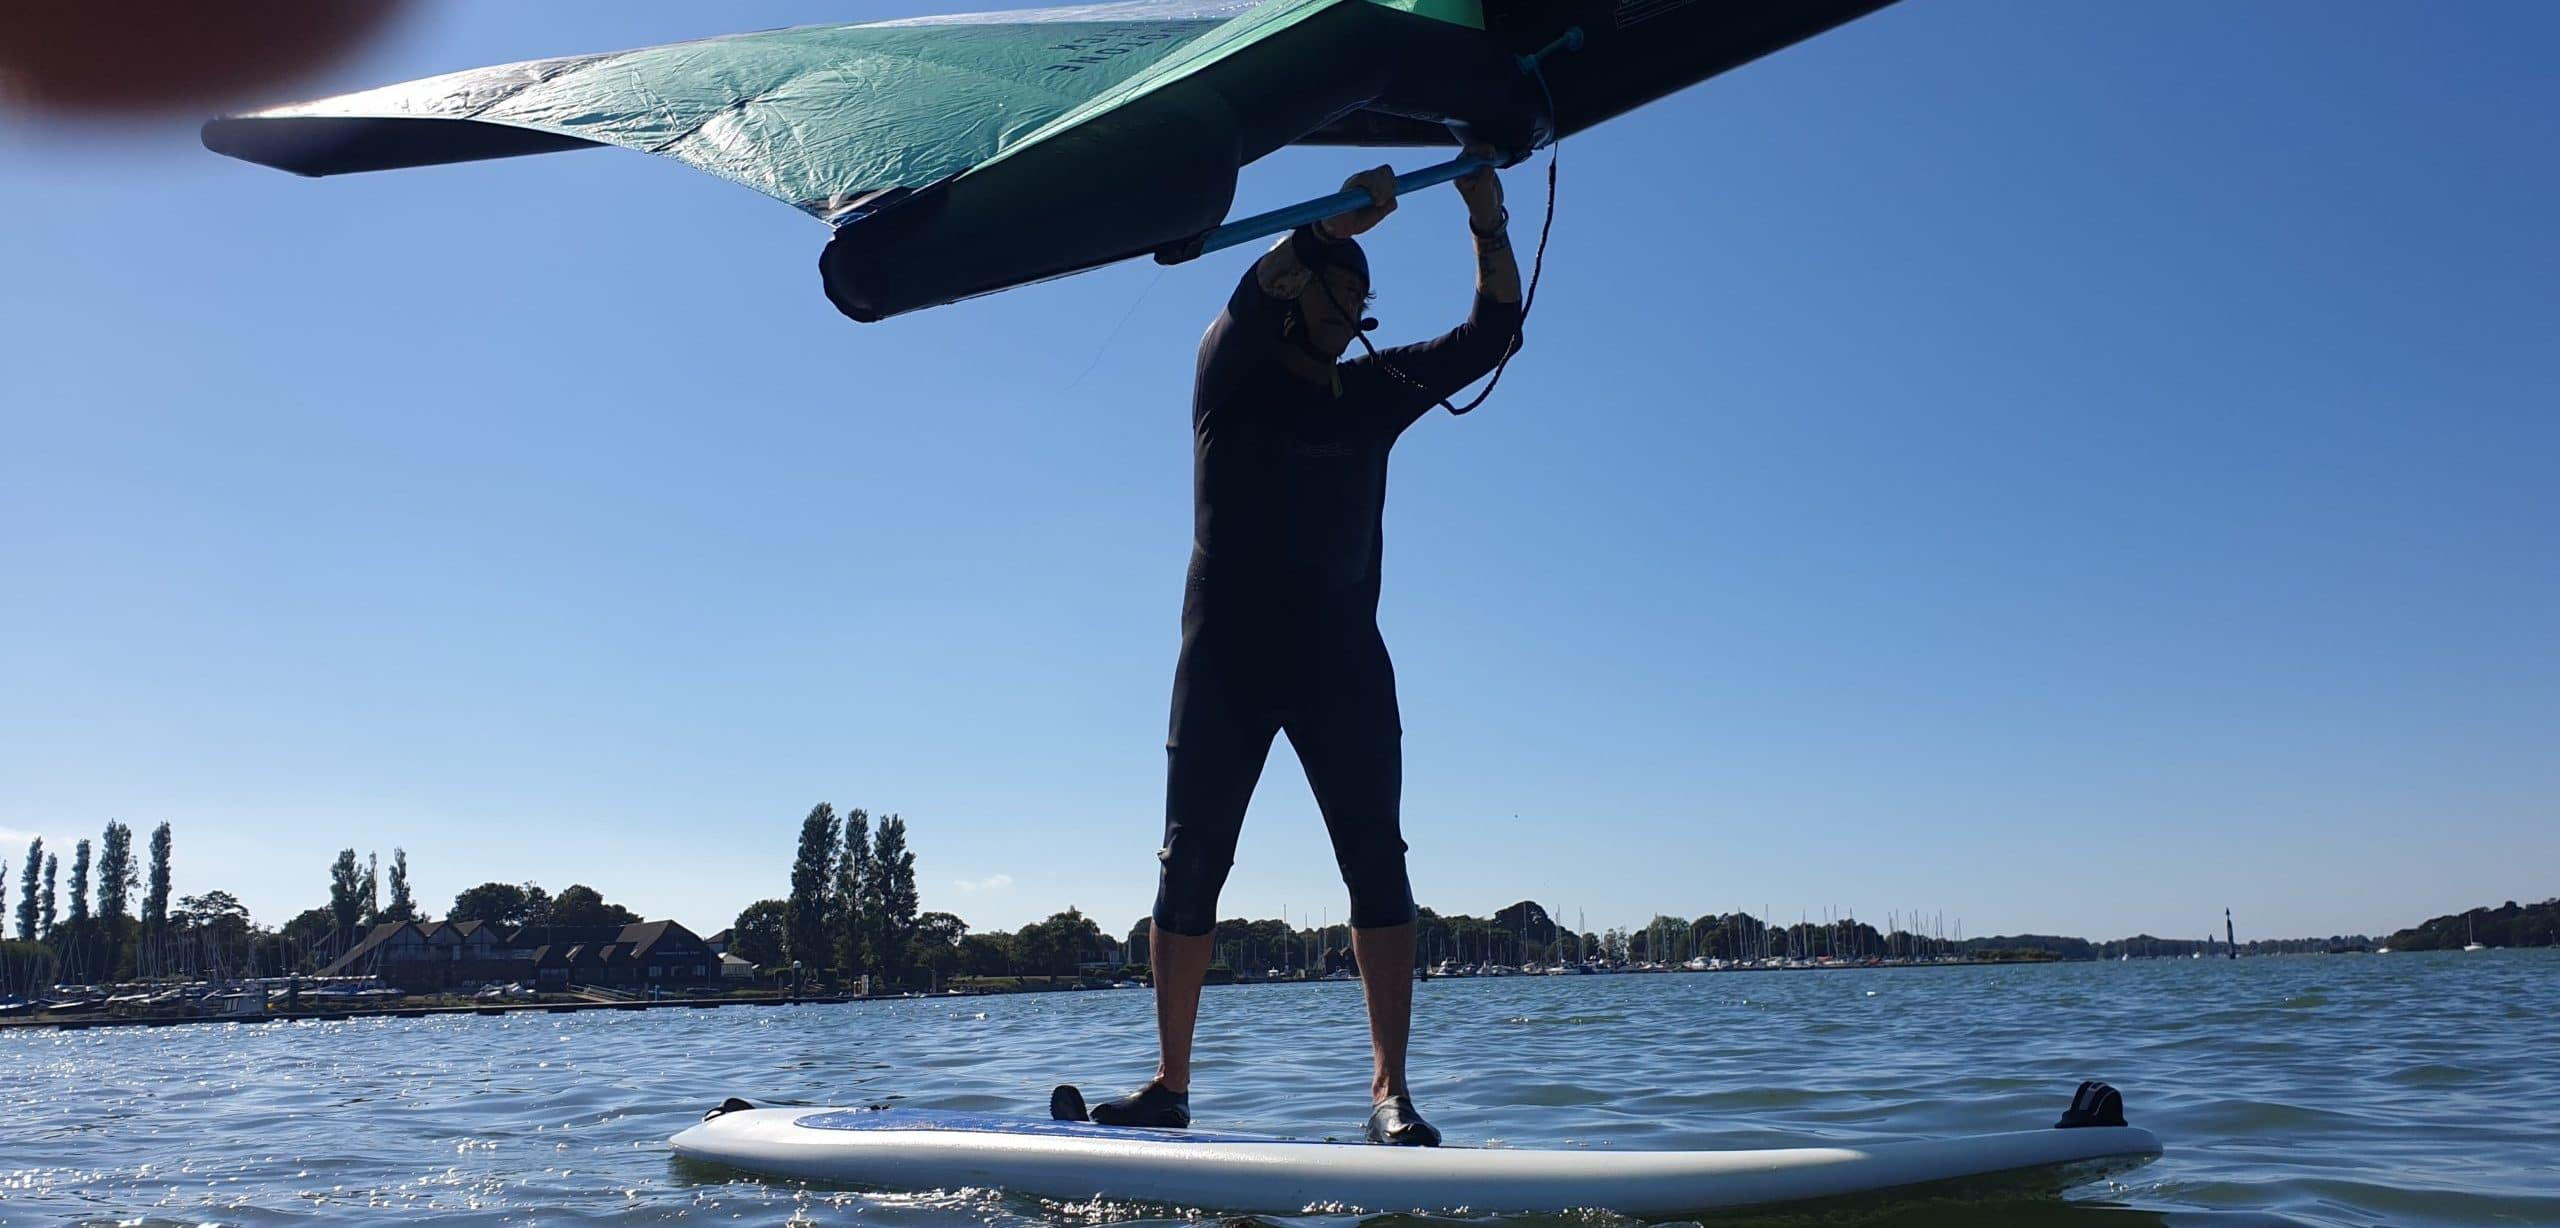 wing sup lessons in chichester harbour, west sussex